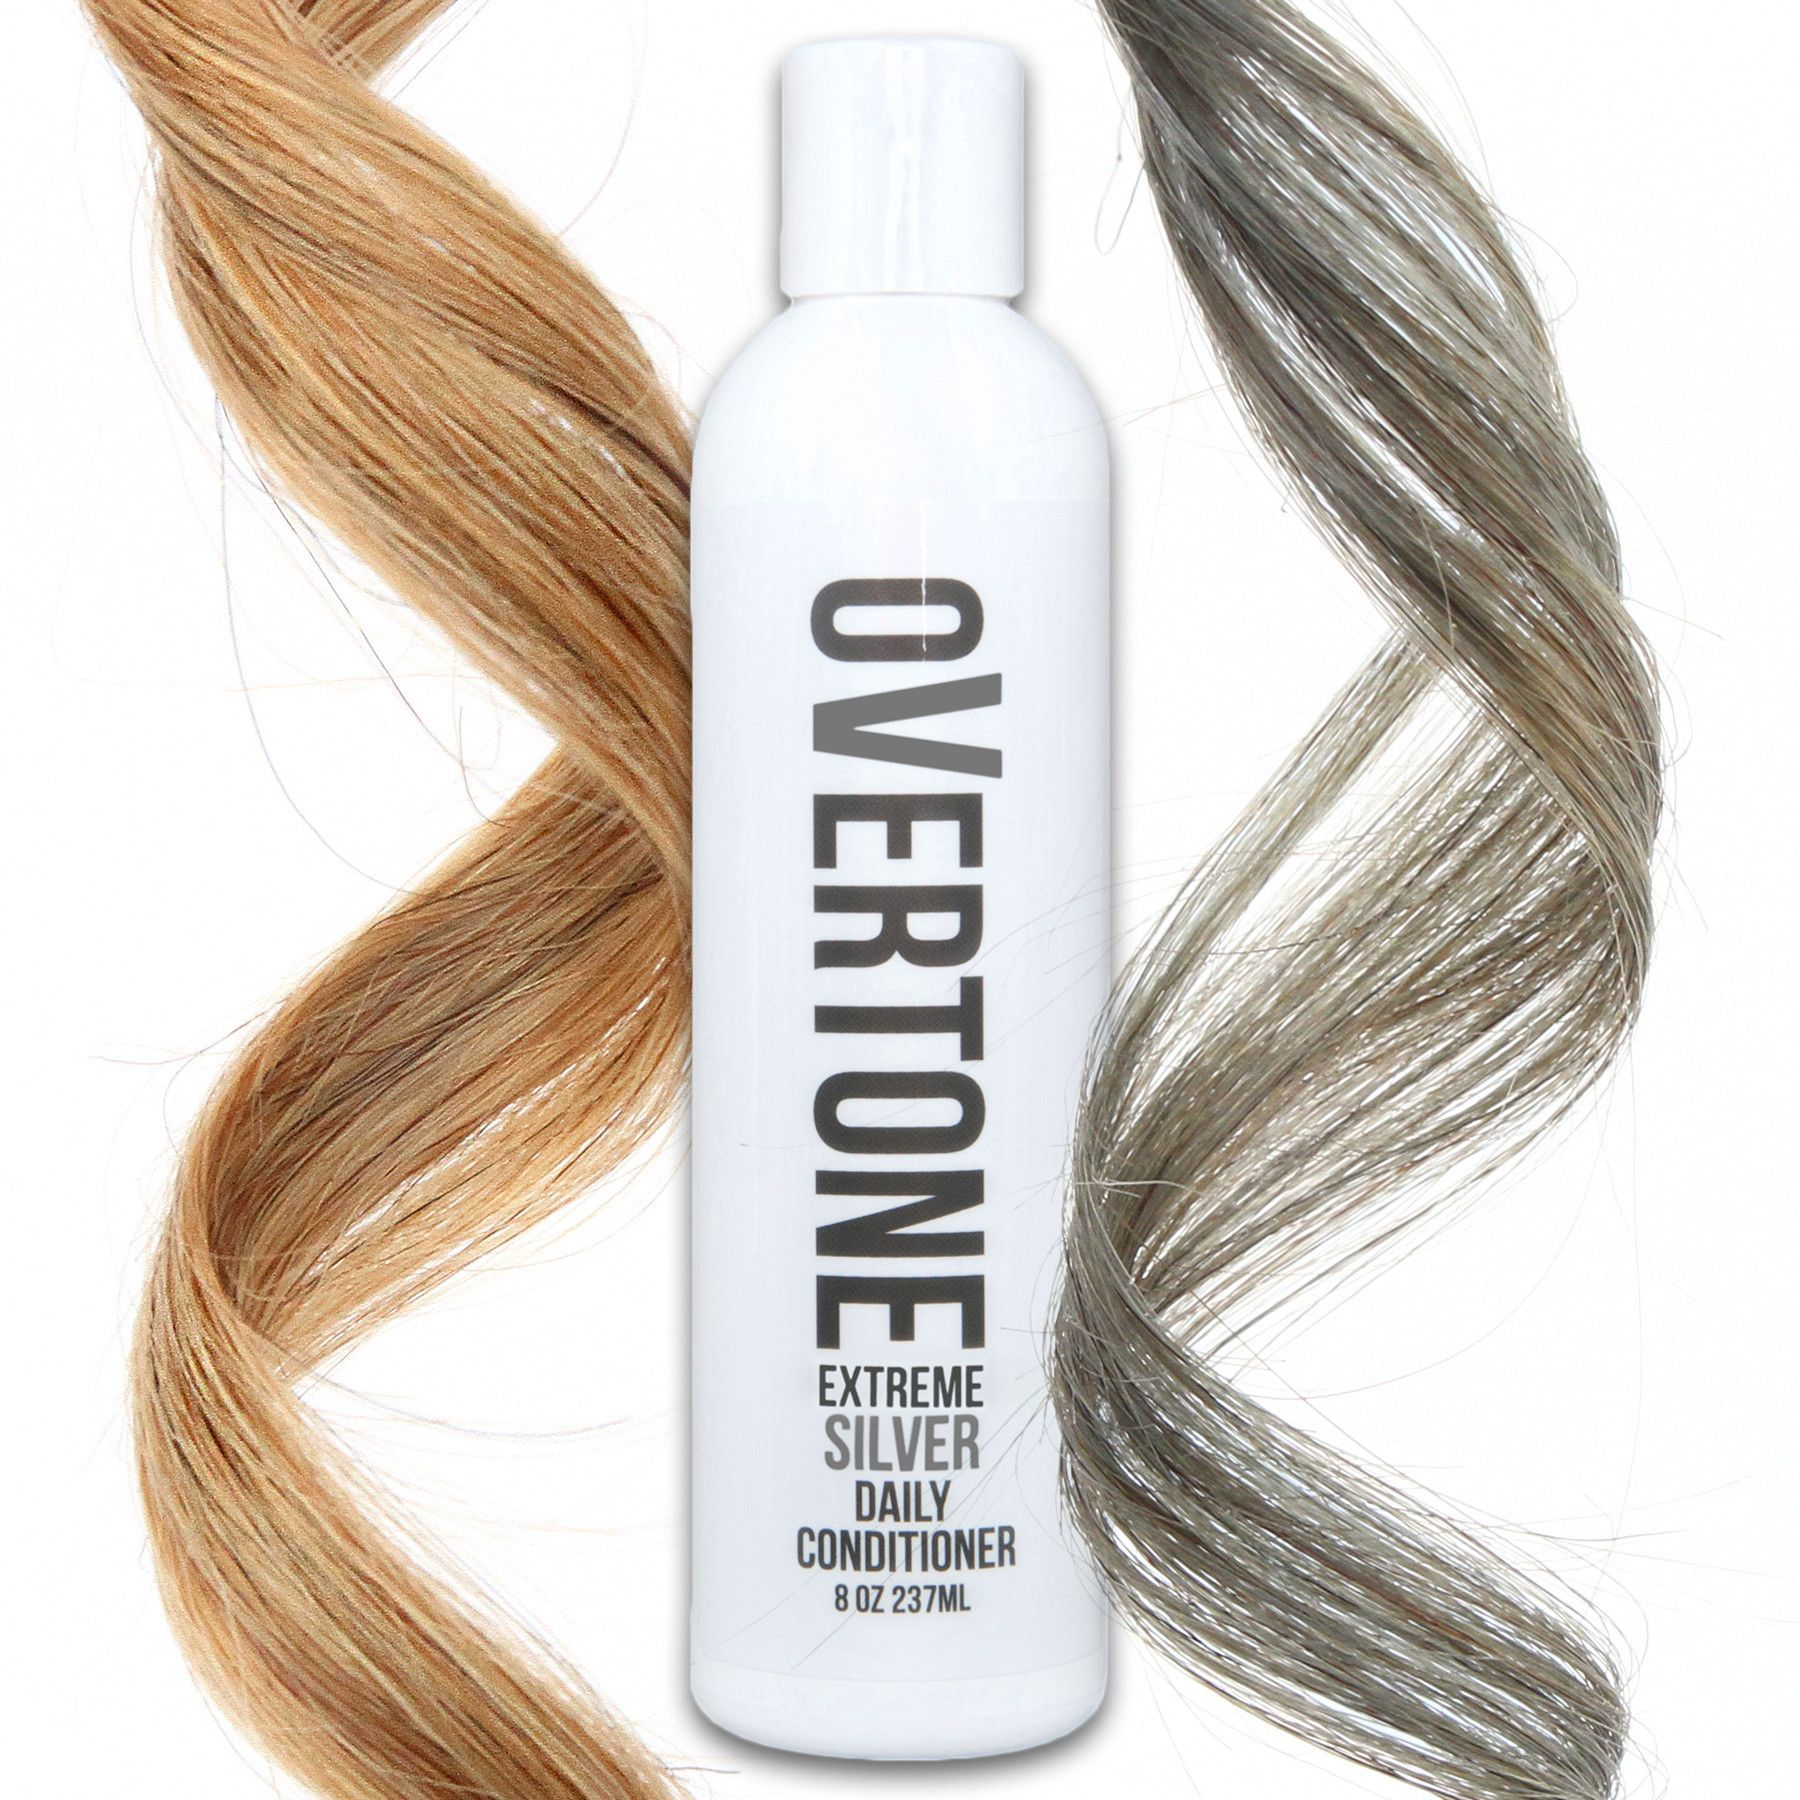 oVertone silver color conditioners are a MUST if you have dyed gray hair  you want to maintain. Don t let your silver hair dye fade! a26bda9d33f2